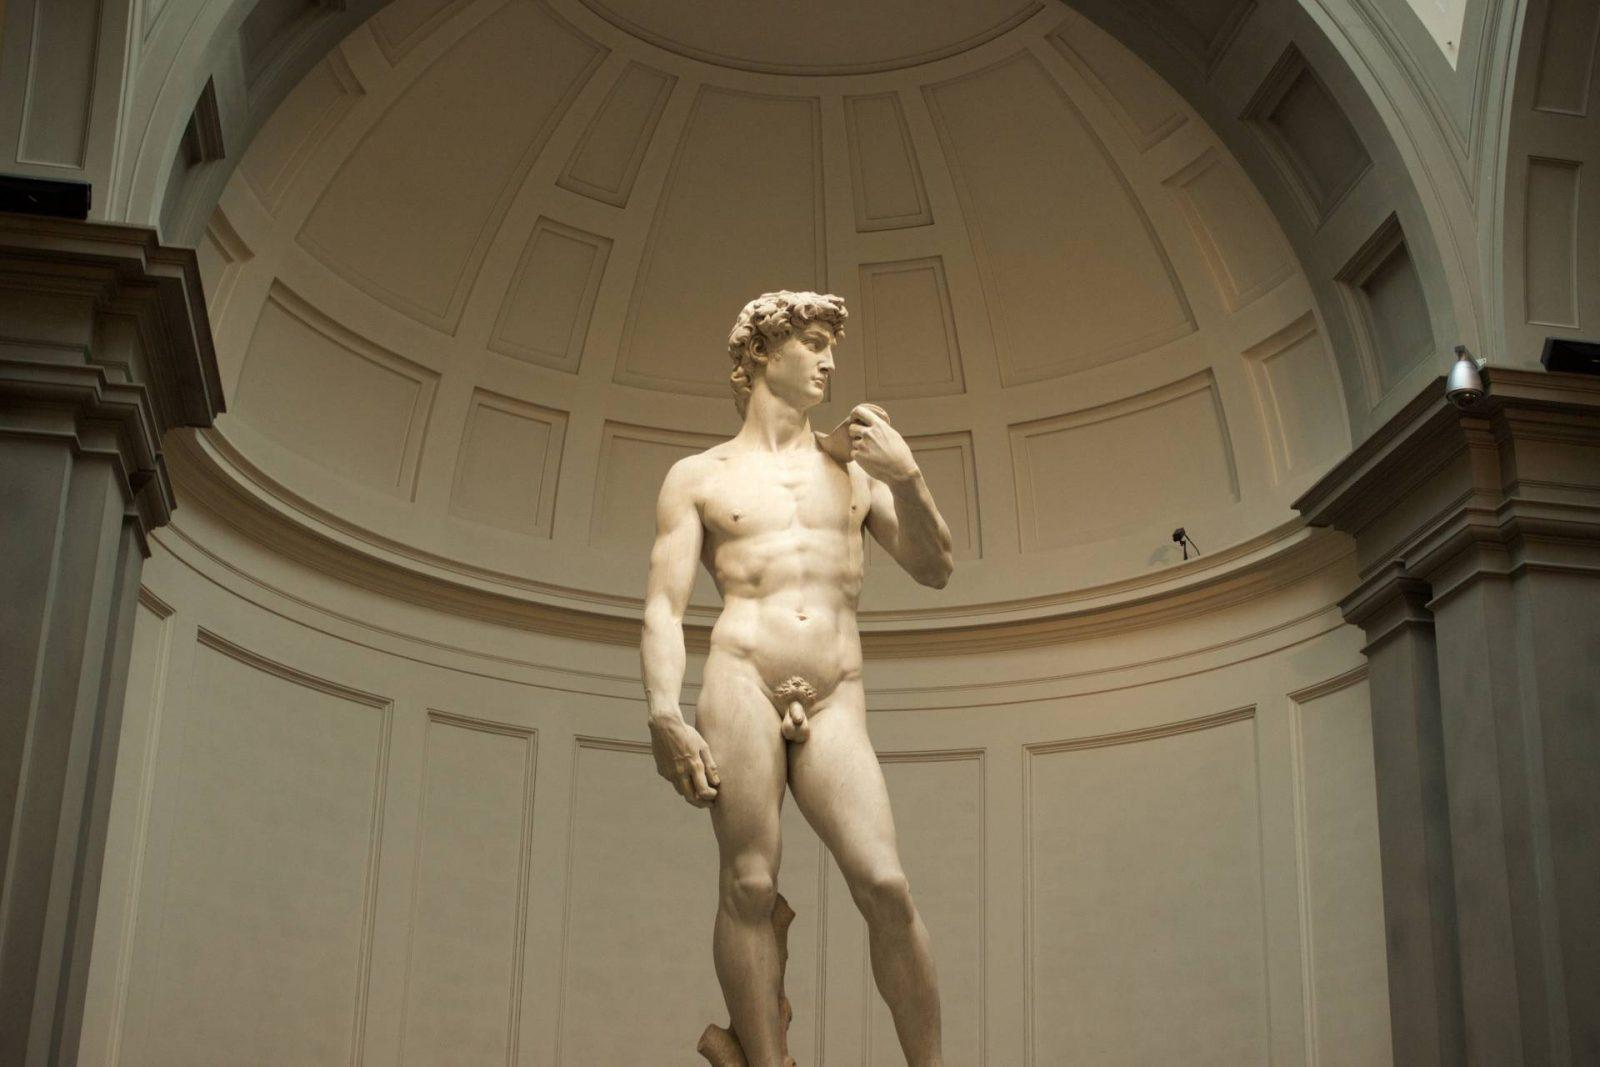 Florence Art Checklist: 8 Must-See Works of Art in Florence, Italy